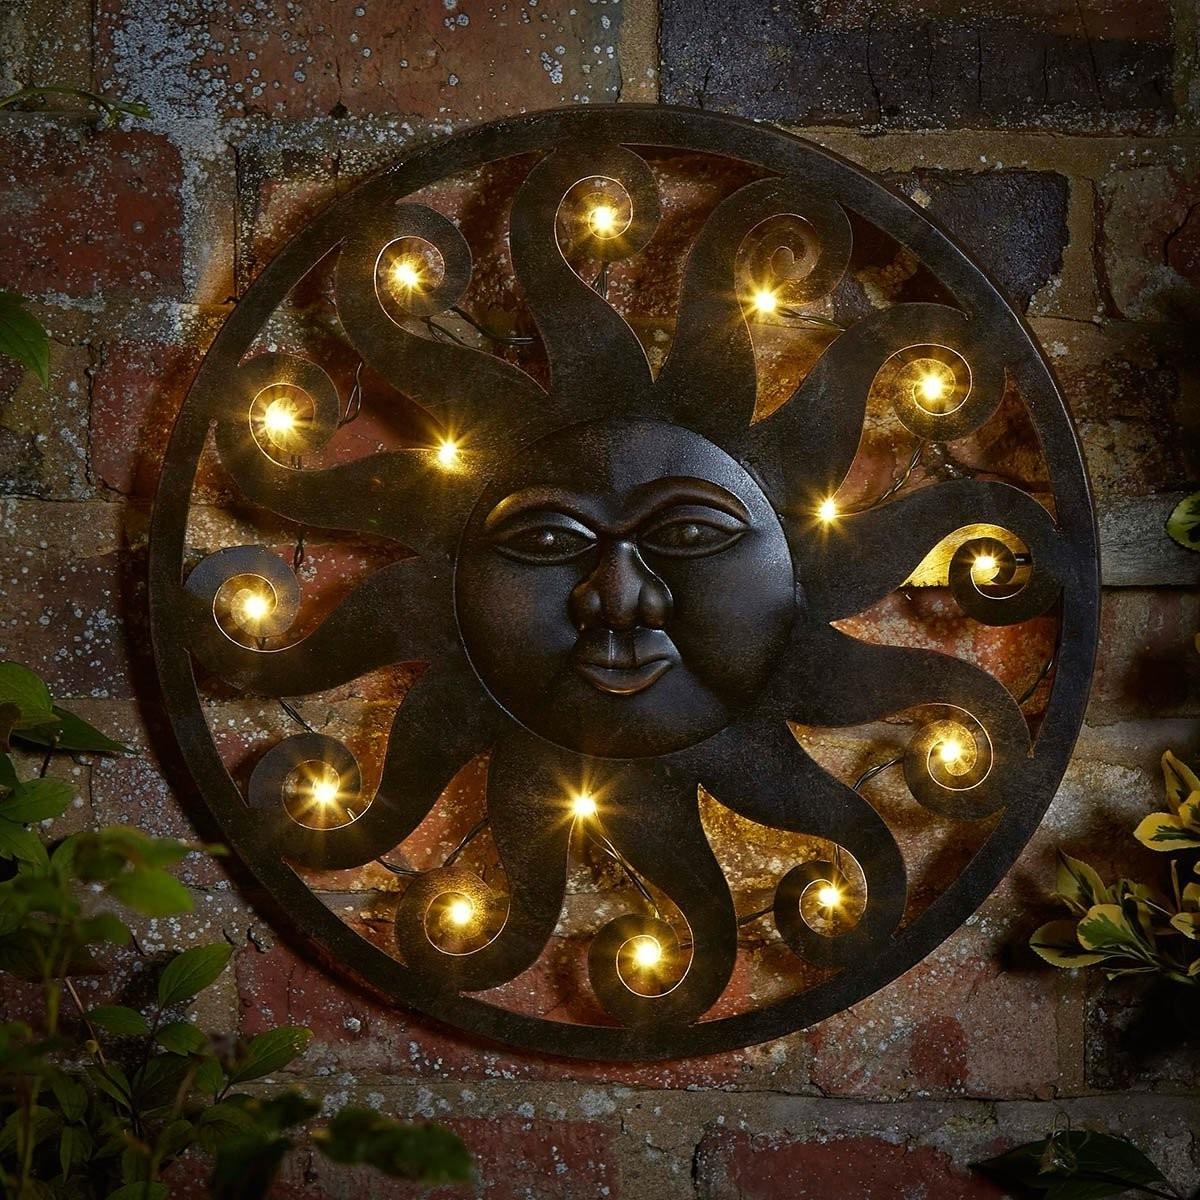 Metal Wall Art Outdoor Use Pertaining To Newest Outdoor Metal Wall Art Design Ideas (View 4 of 15)